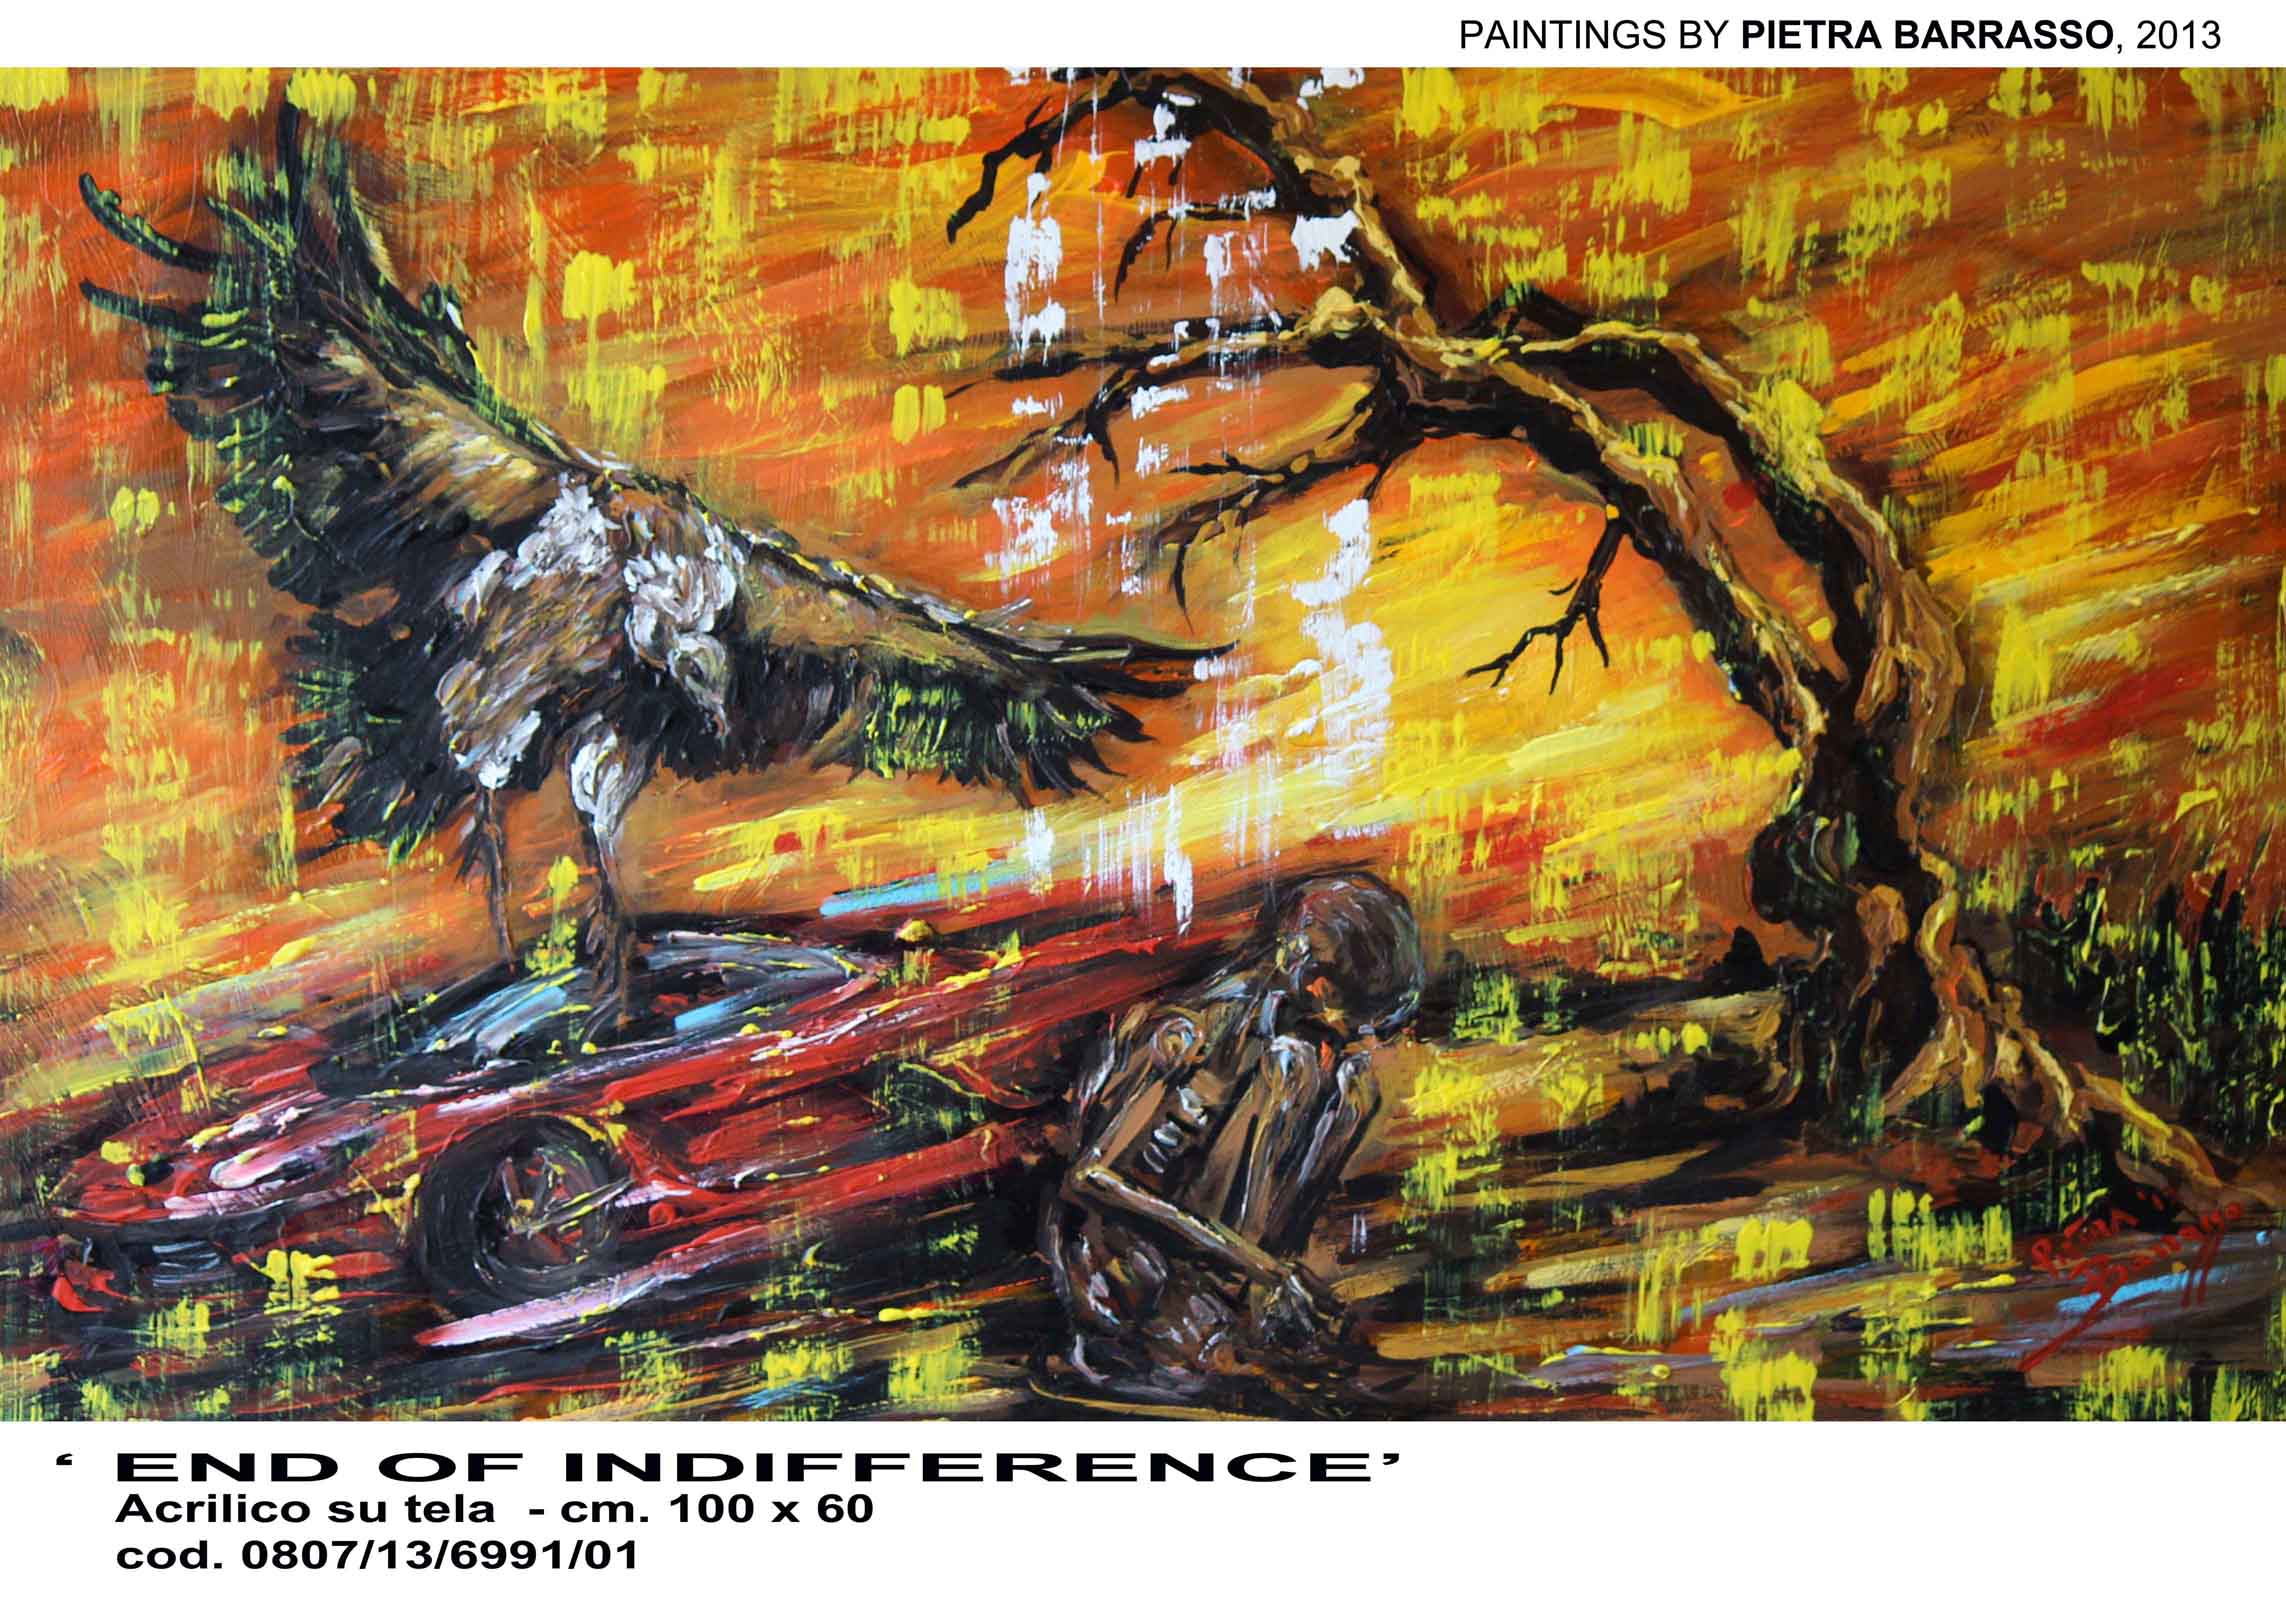 end of indifference